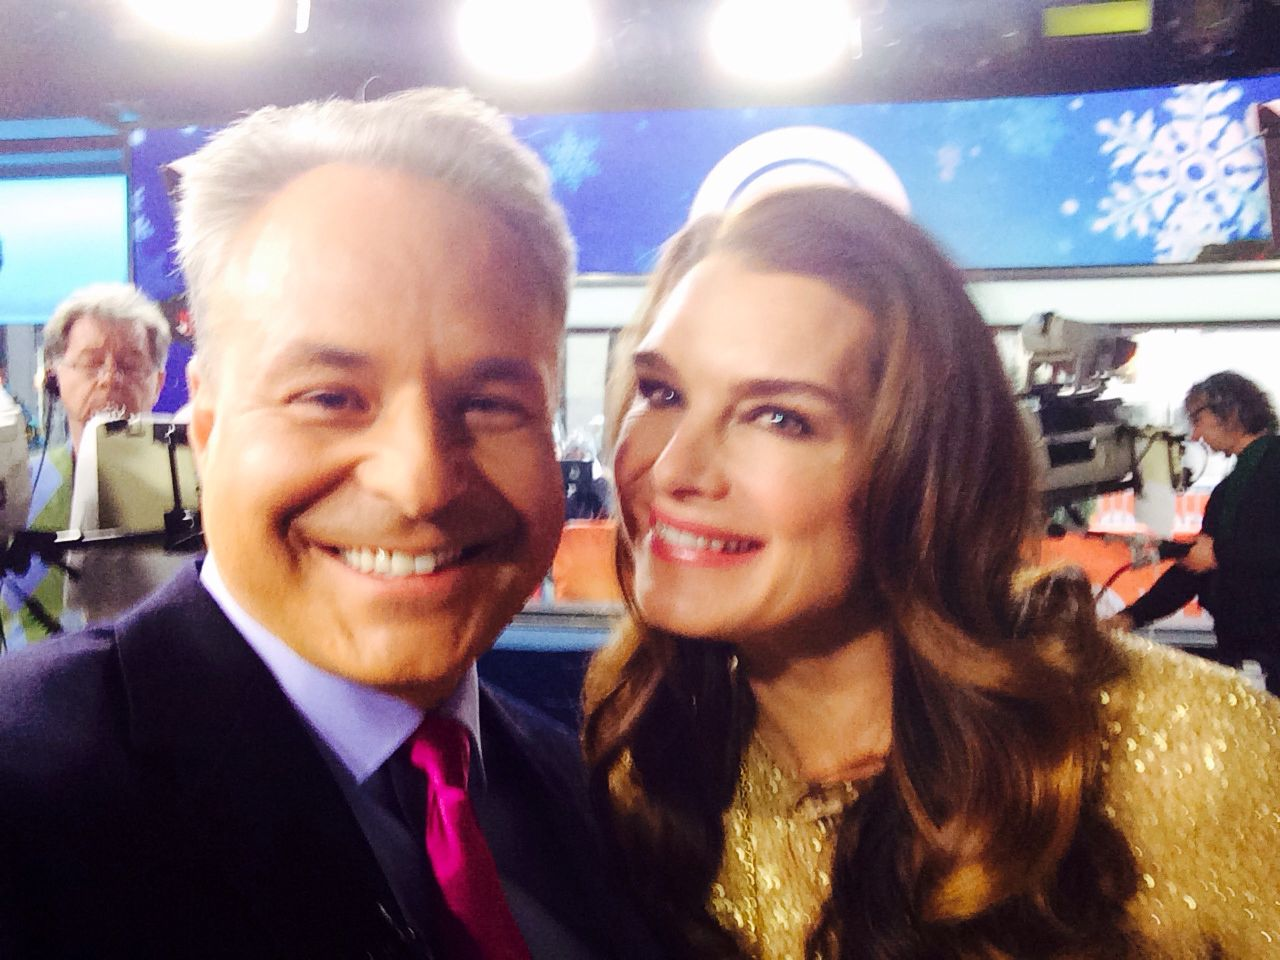 Clint Arthur and Brooke Shields